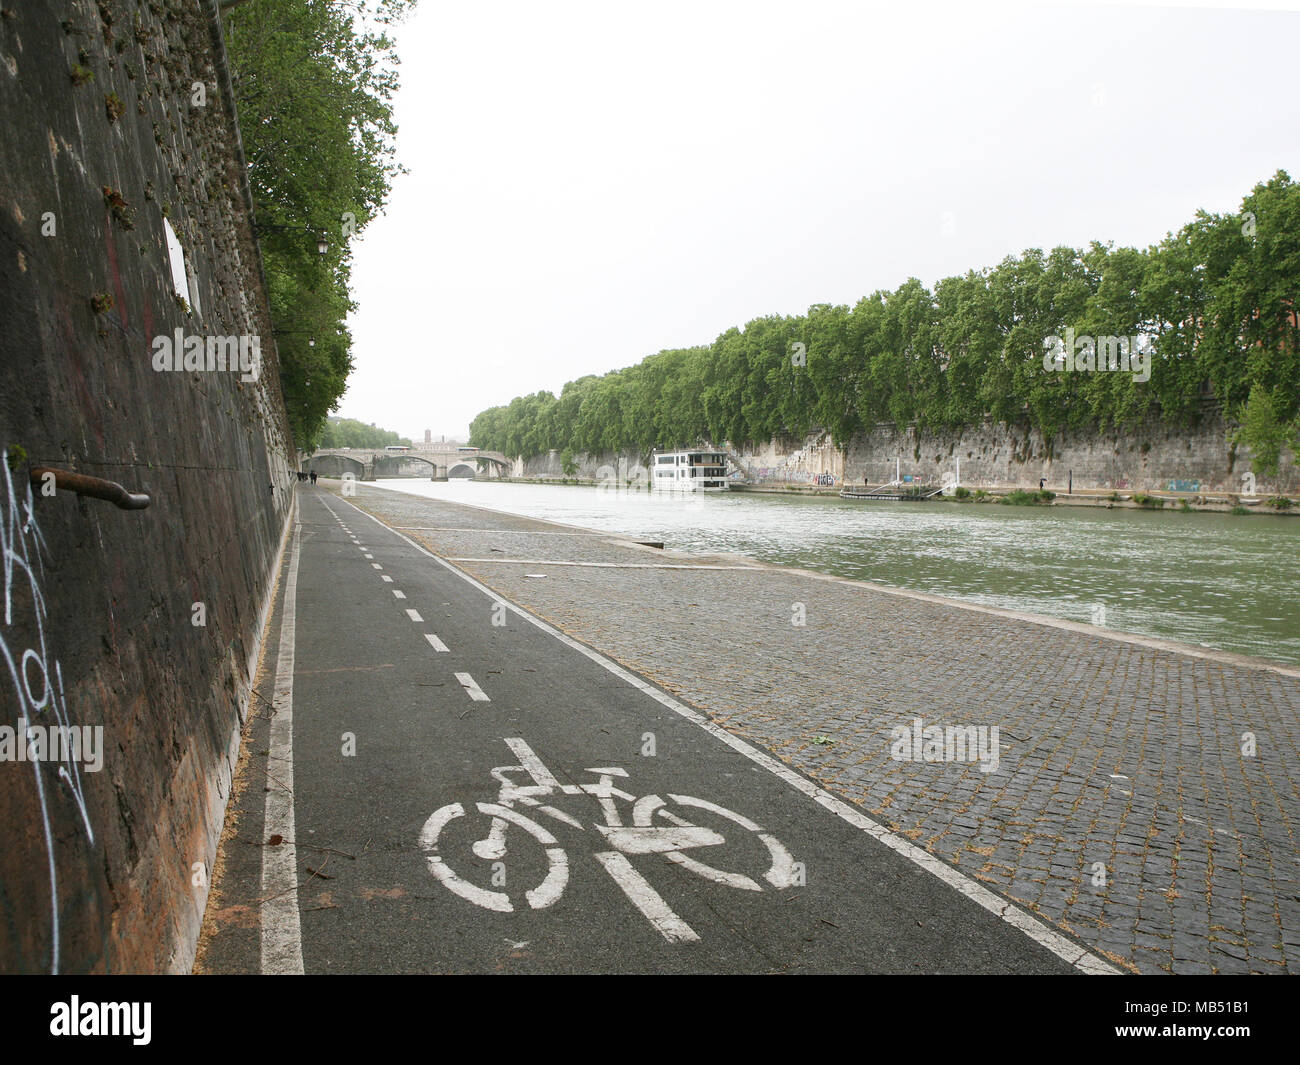 The bike lane down the river Tiber, Rome, Italy - Stock Image